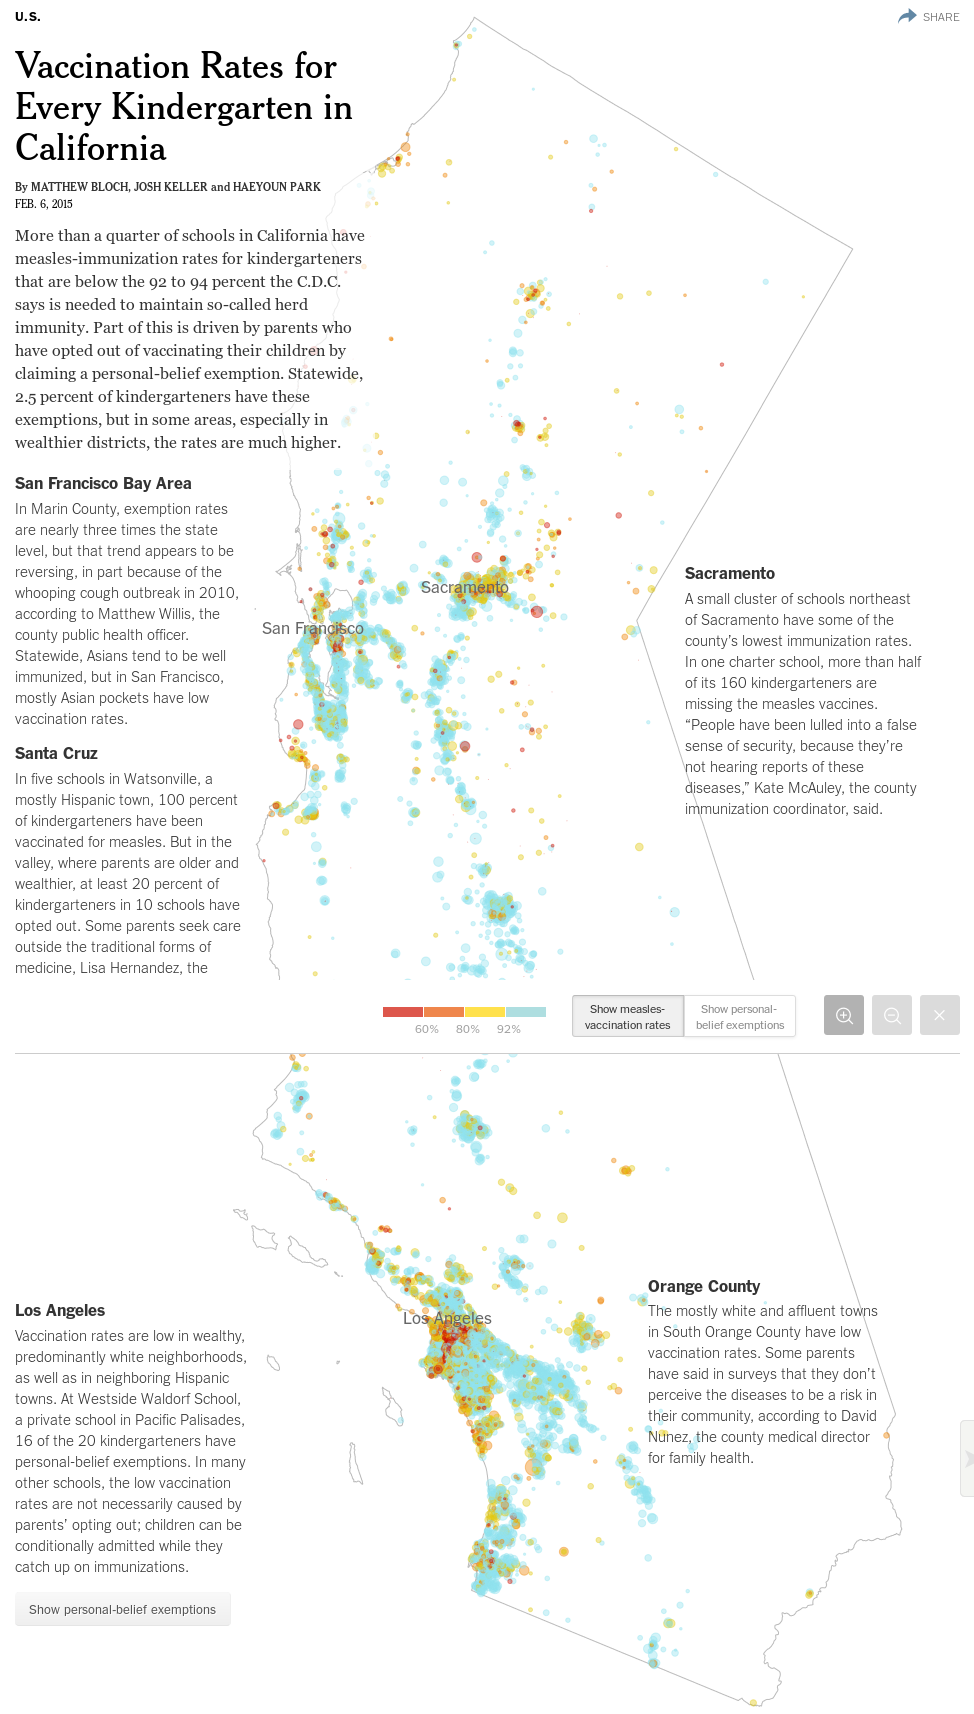 Vaccination Rates for Every Kindergarten in California